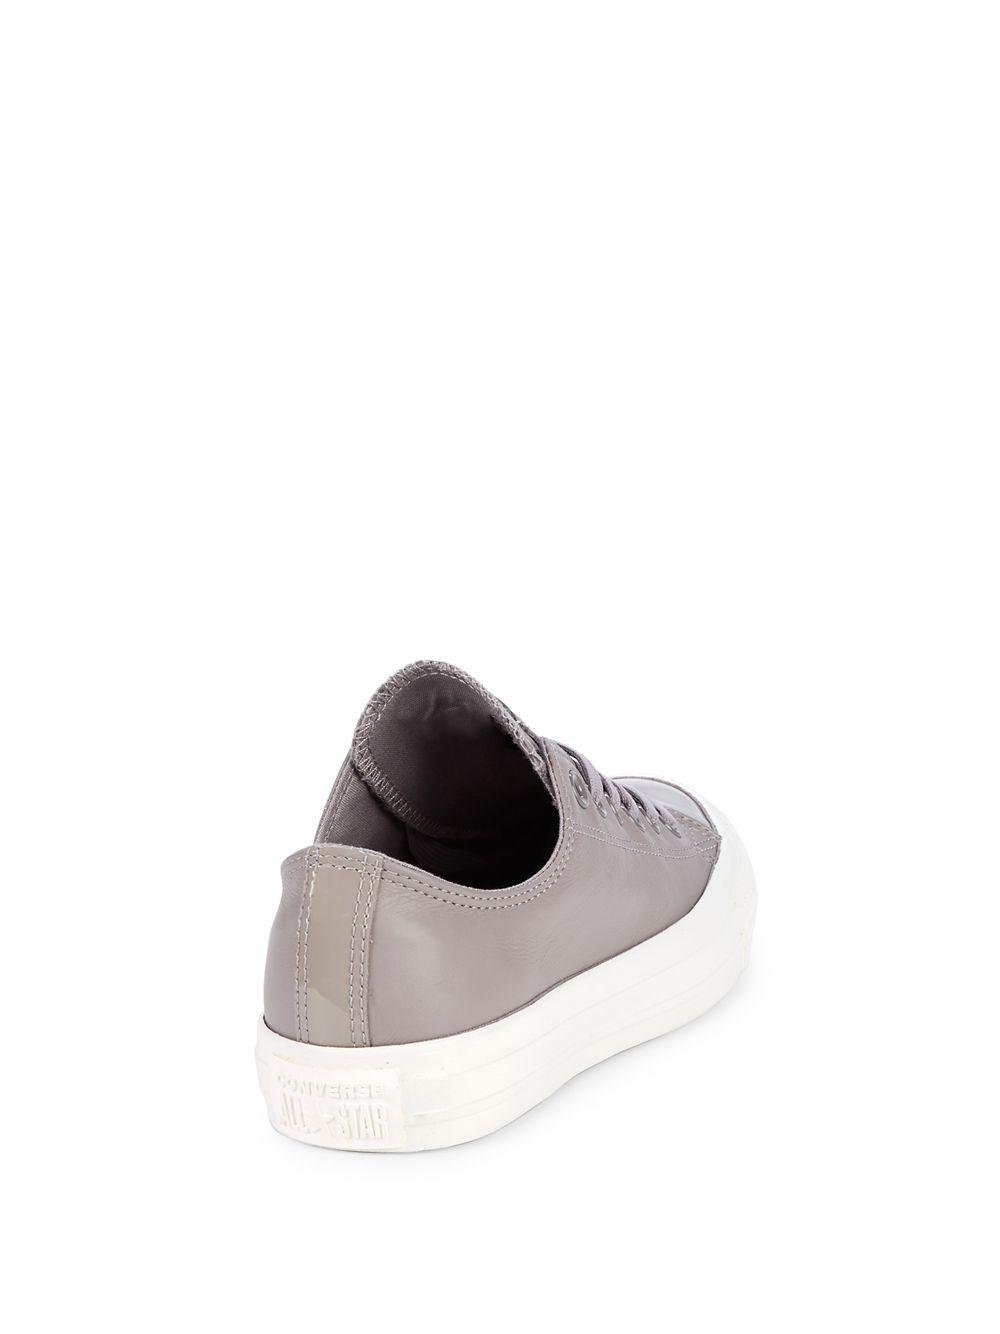 5ccf1da58ab881 Converse - Gray All-star Leather Low-top Sneakers - Lyst. View fullscreen